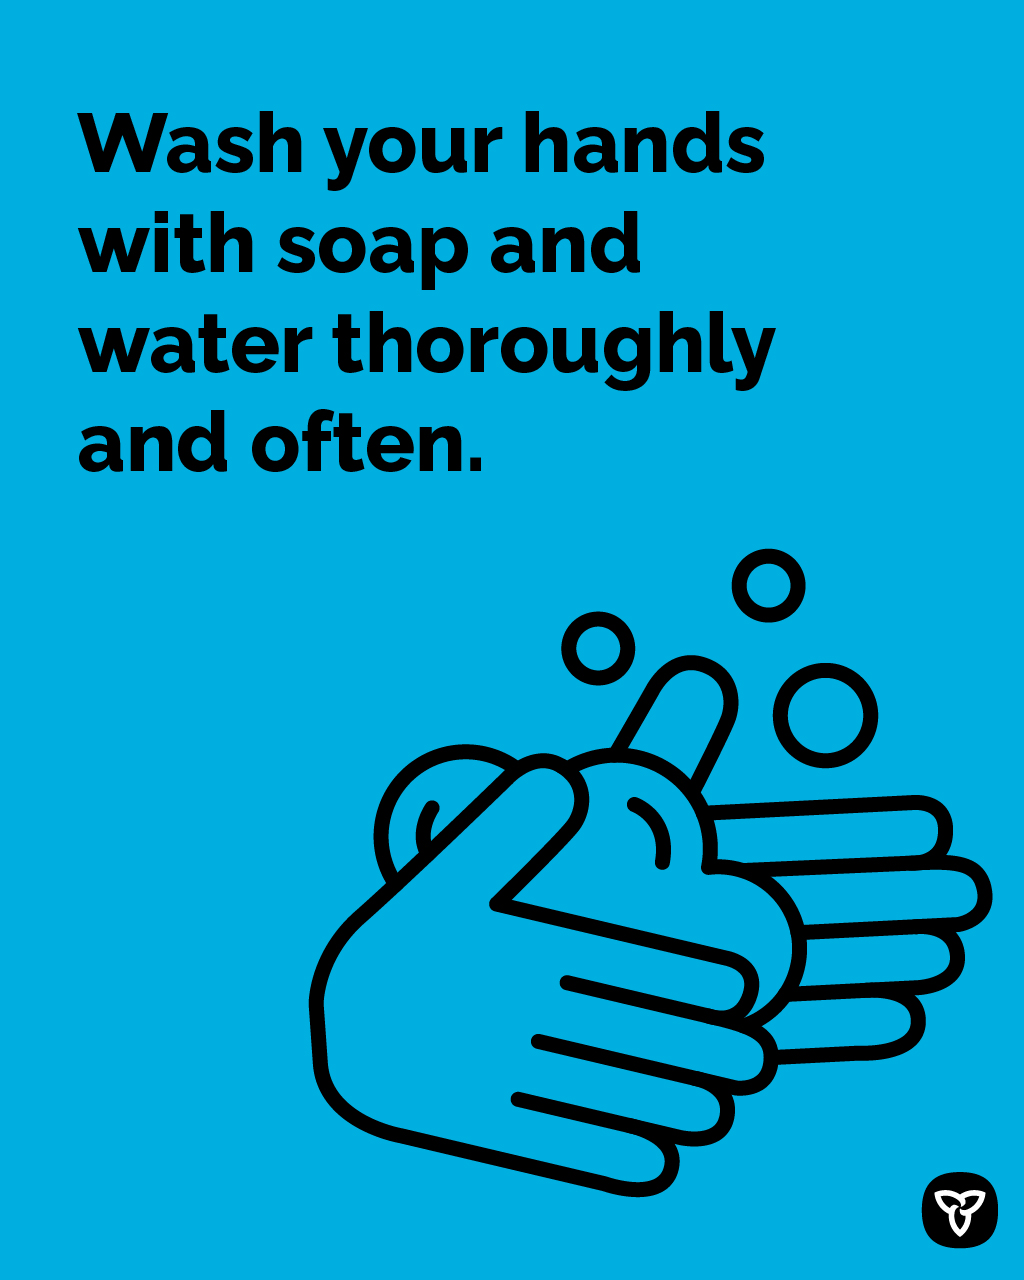 Public Health Tips: Wash Your Hands Thoroughly and Often